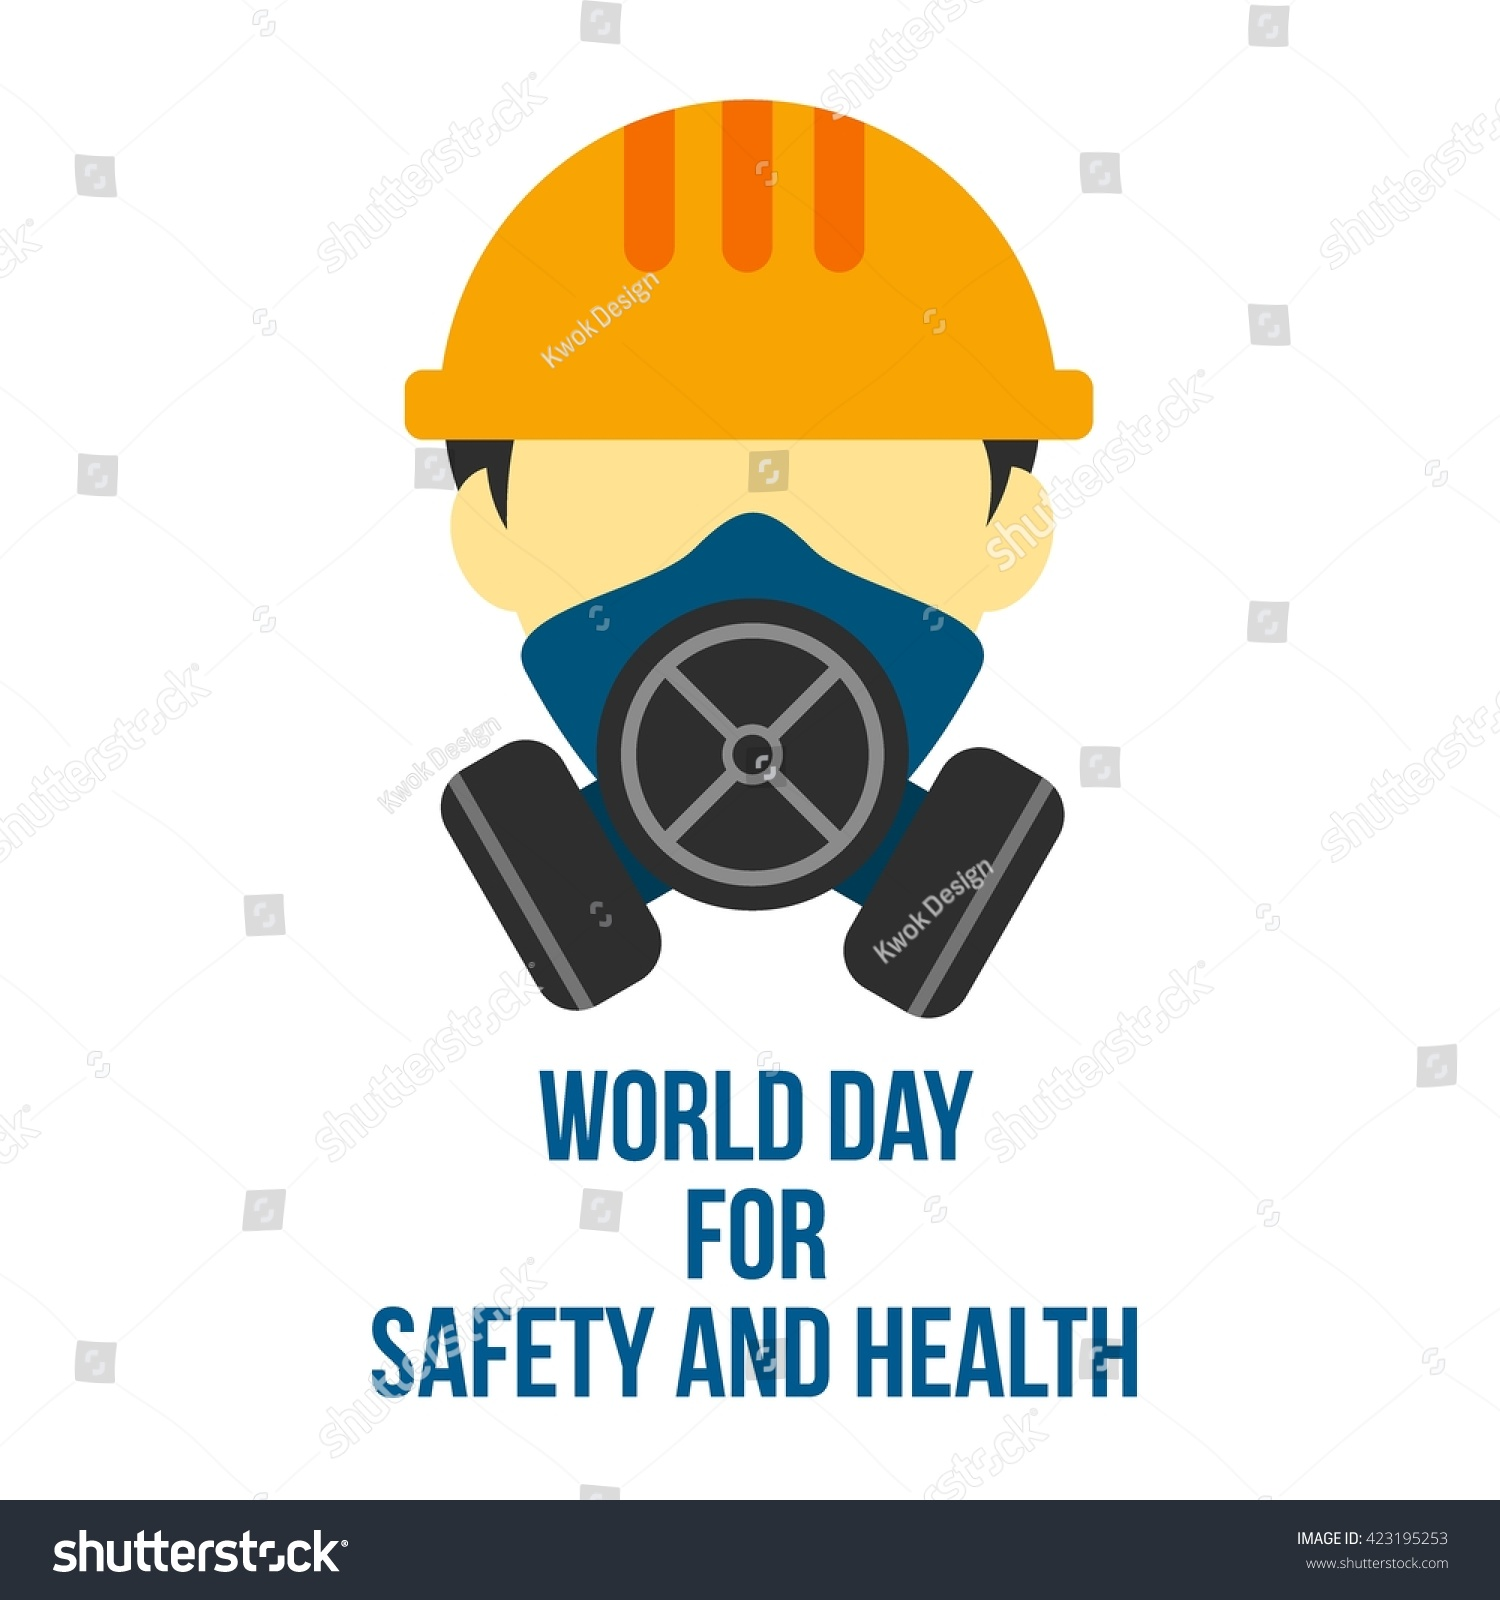 campaign world day safety health work stock vector